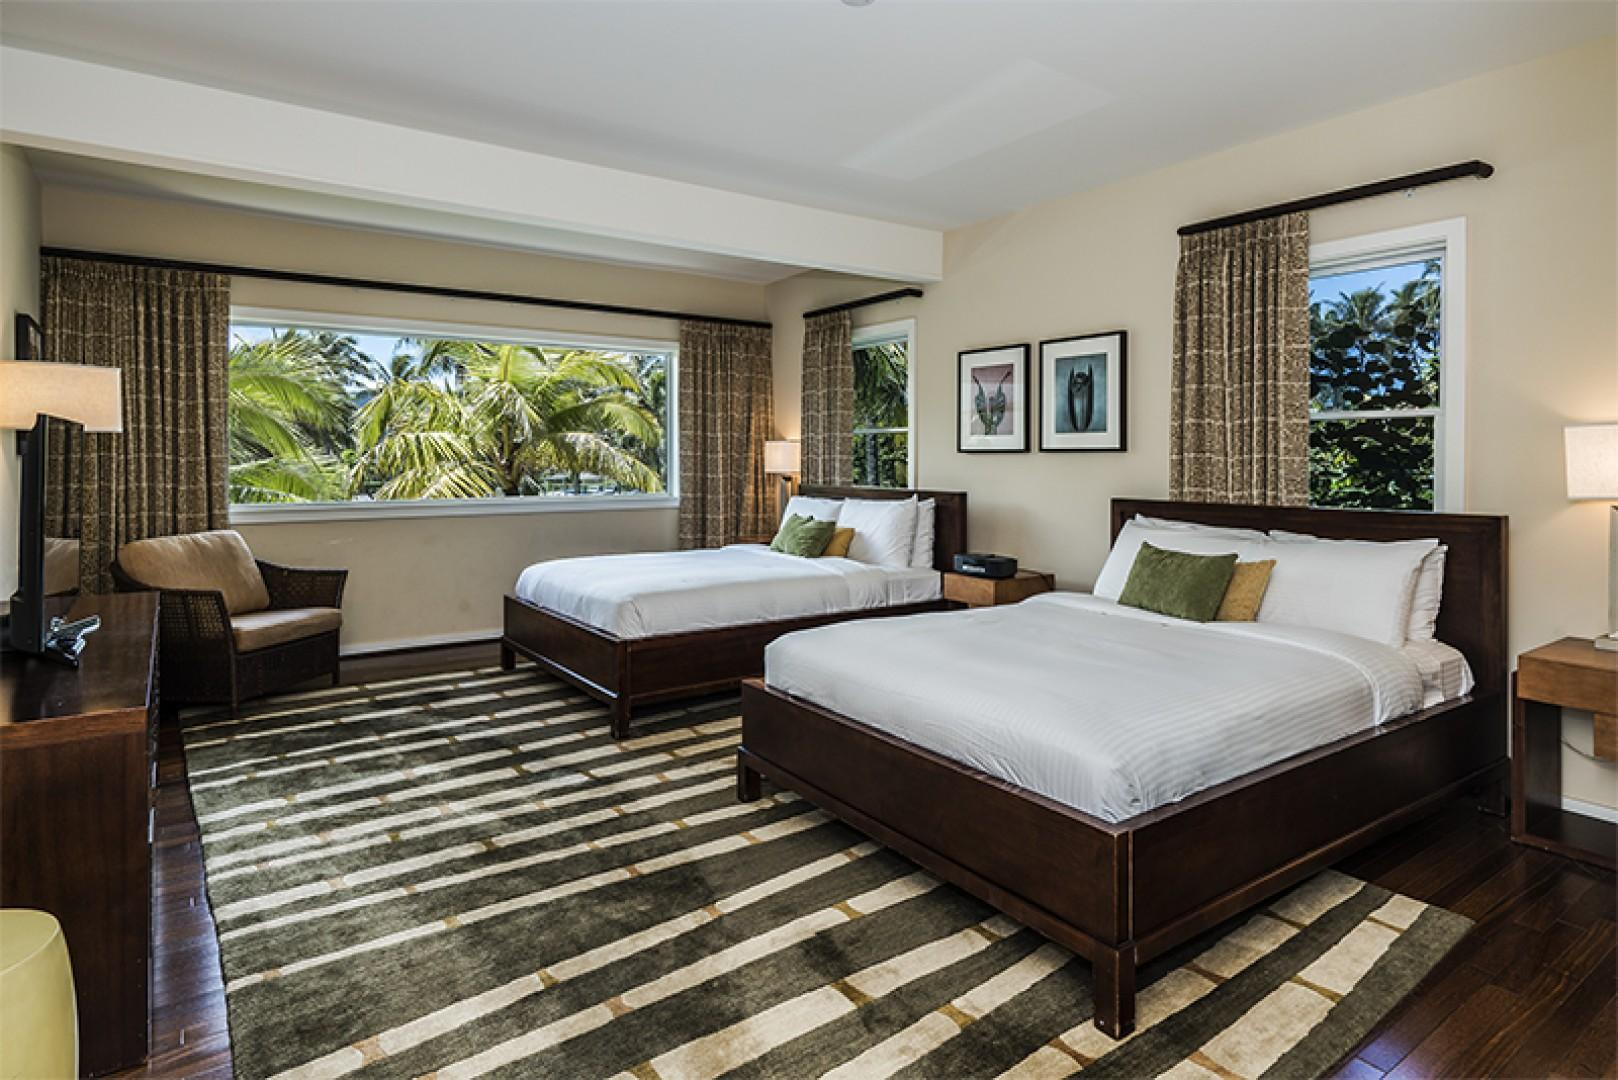 Extended Guest Bedroom contains 2 queen size beds